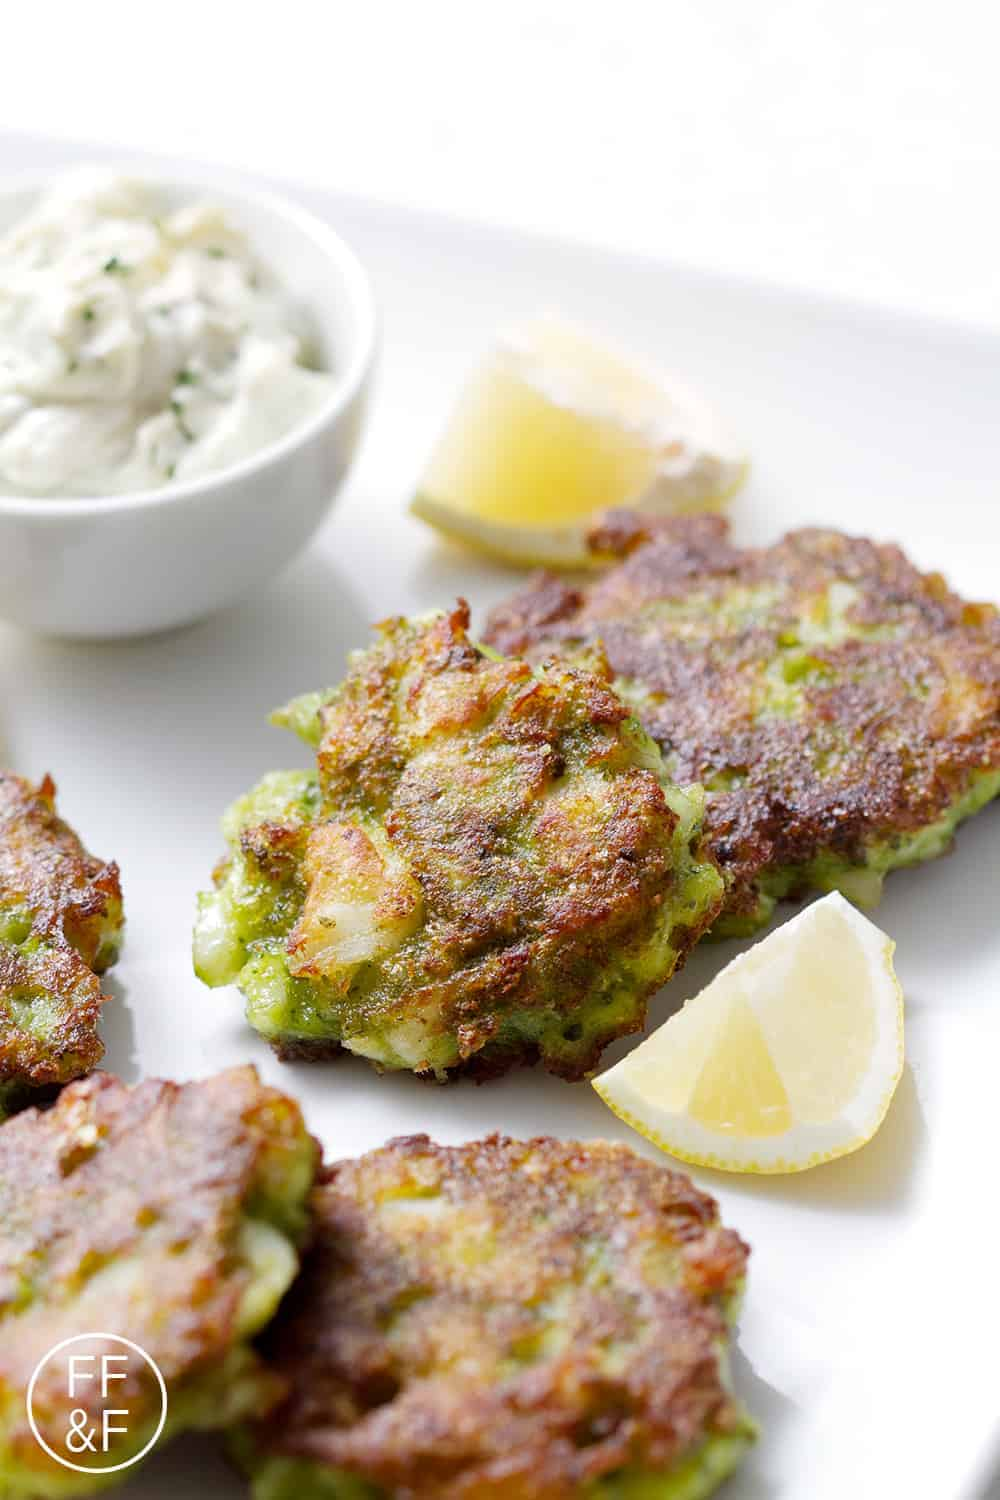 These Pesto Fish Patties are made of only 5 ingredients and that includes the salt! It's amazingly flavorful even with such few ingredients. This recipe is great for paleo and autoimmune protocol diets.